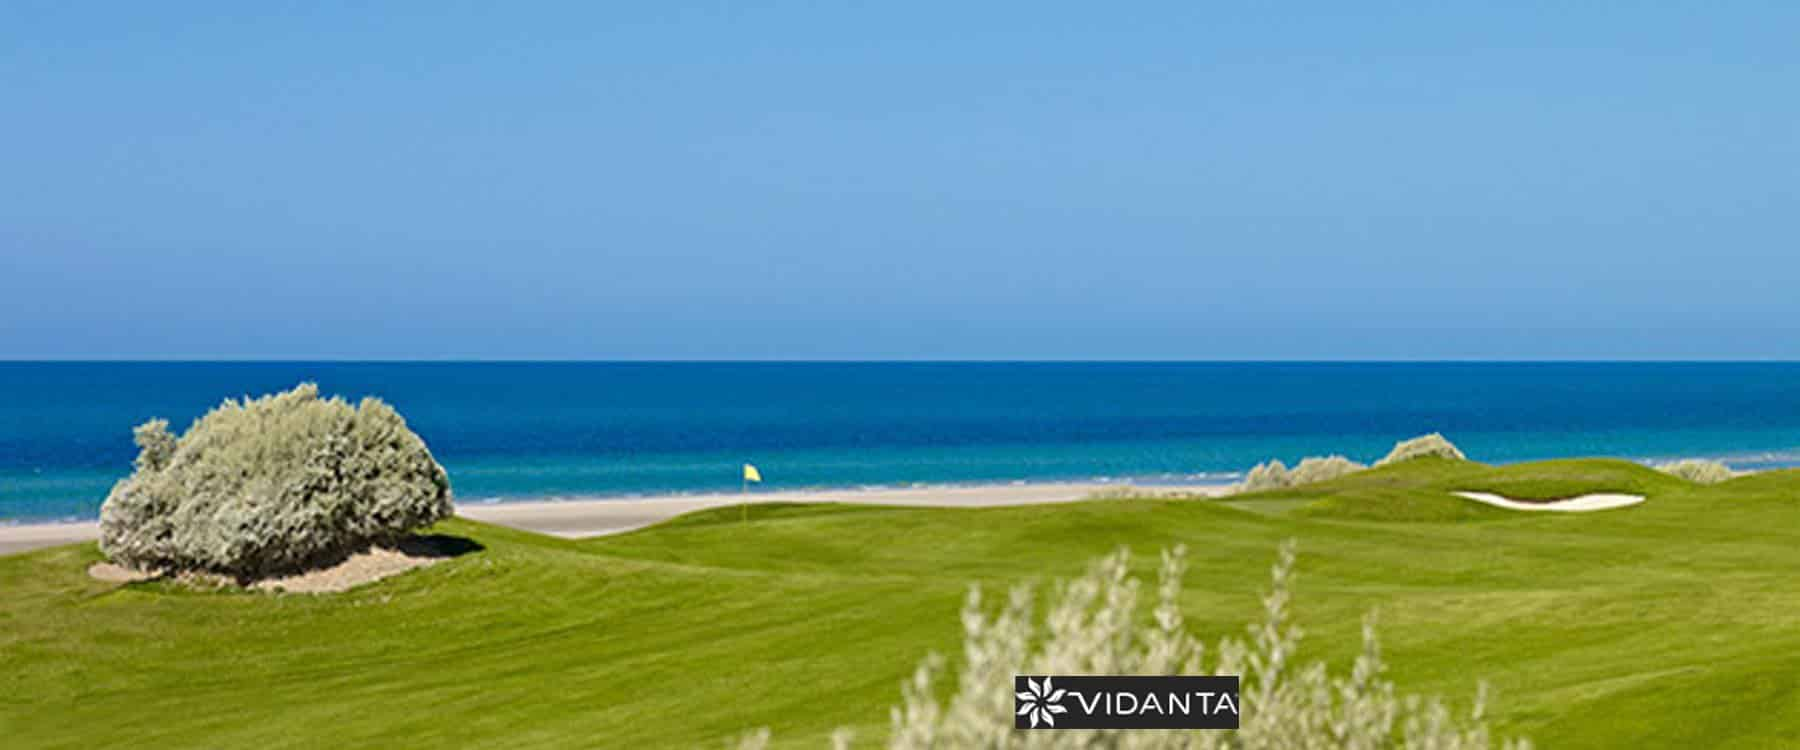 Vidanta Golf Picture in Puerto Penasco Mexico (Rocky Point).